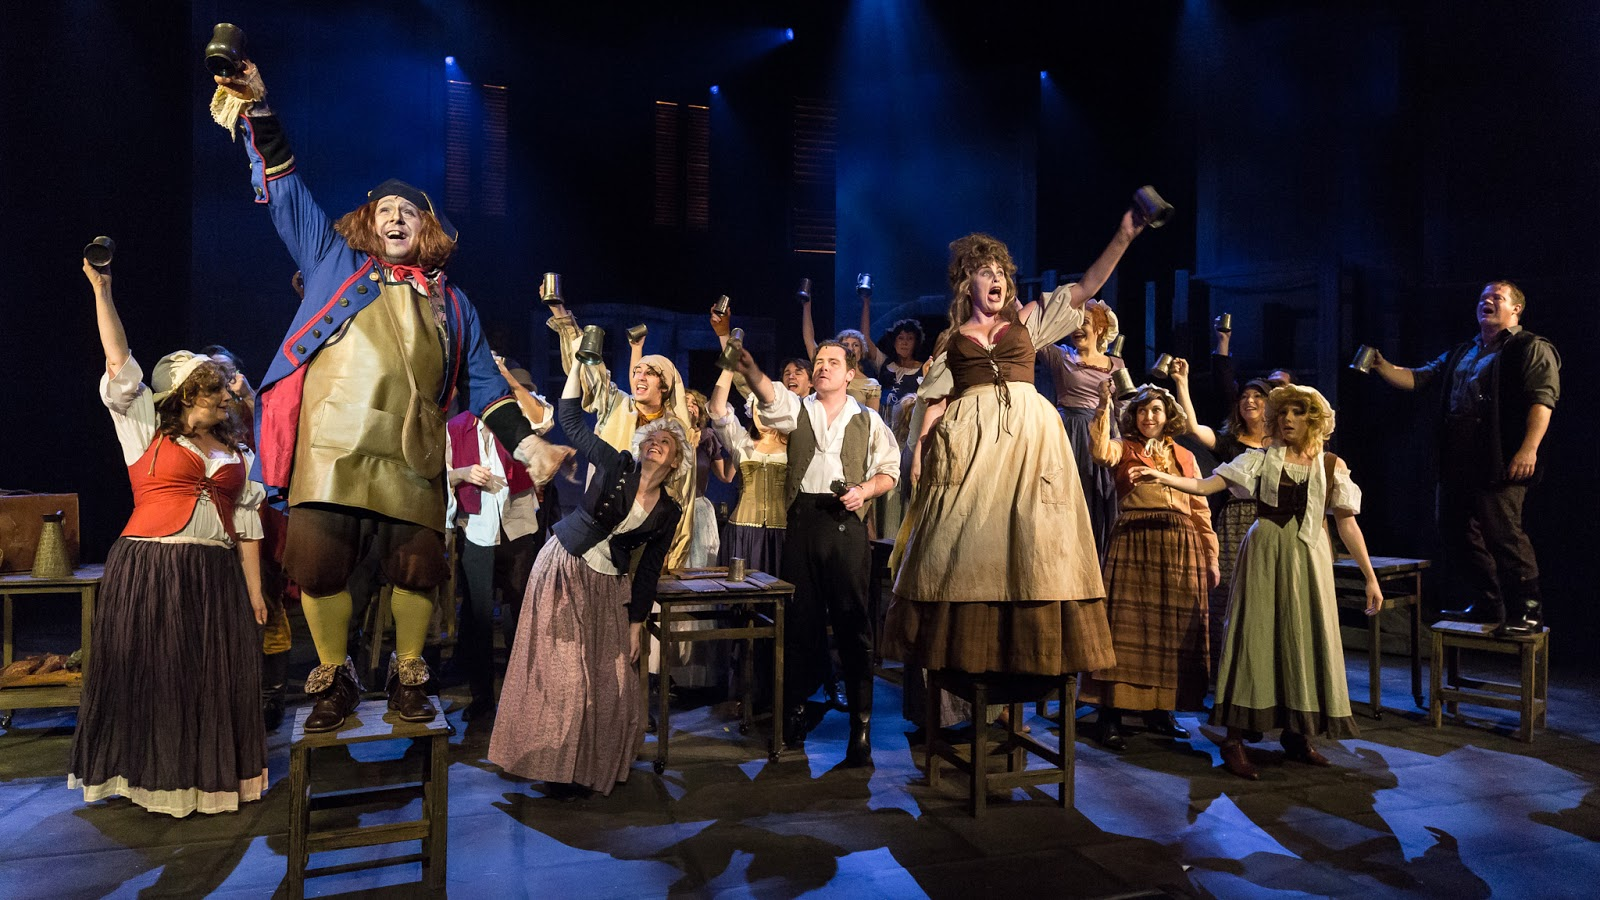 les miserables as a musical Les mis rables character descriptions revised october 18, 2013 note: ages listed are stage age age you must appear on stage we are unable to upload sheet music because of copyright rules our score best matches the 2010.